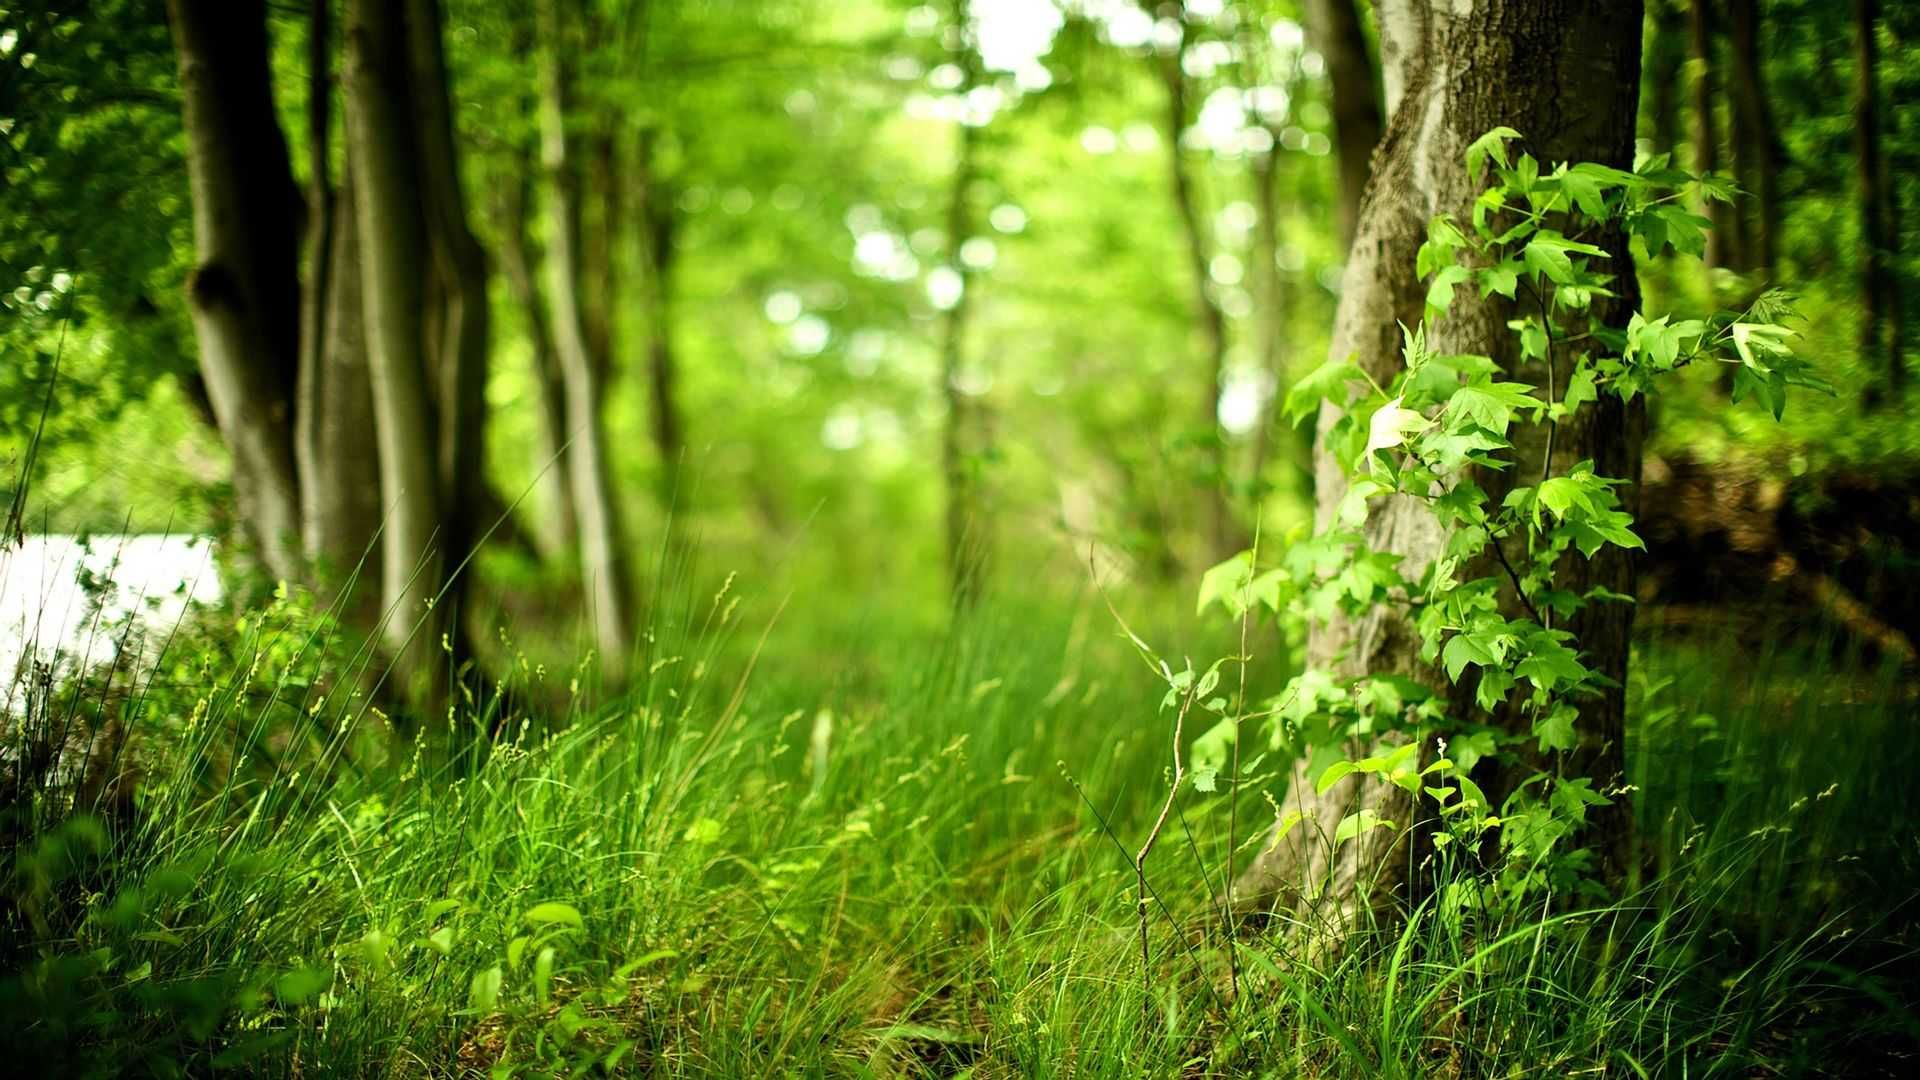 Trees Forest hd wallpaper 1080p for pc